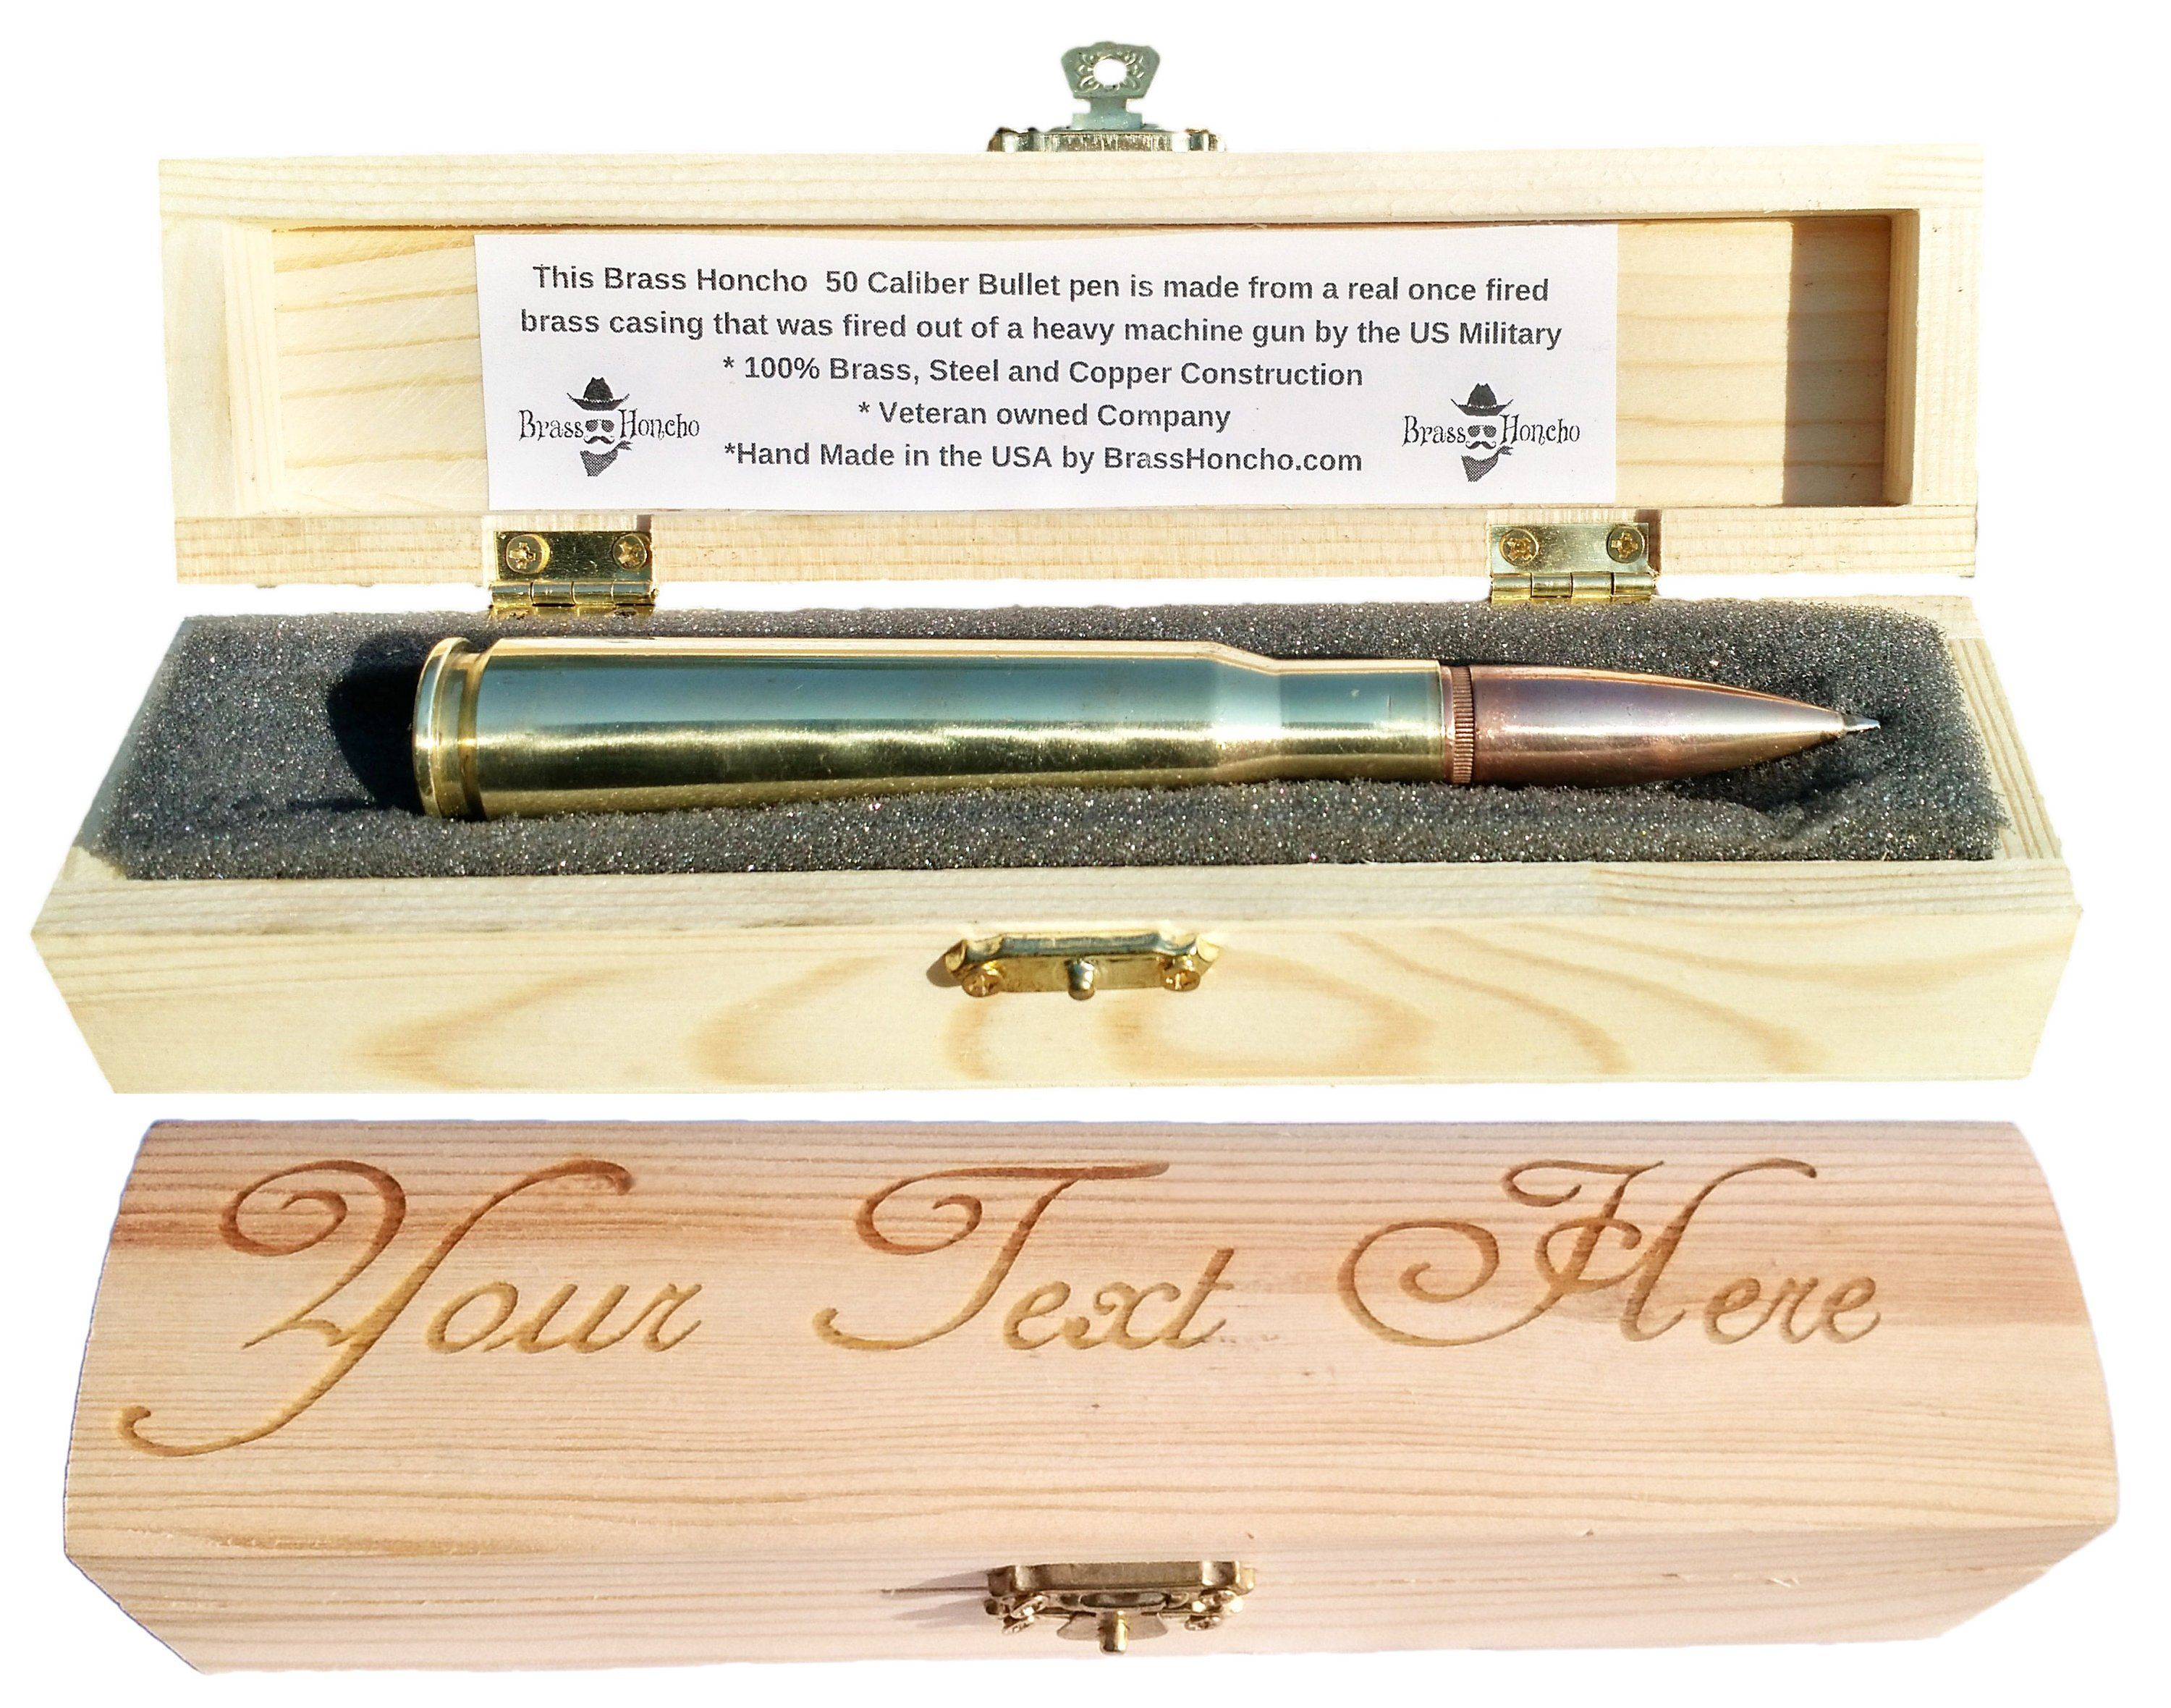 7th copper anniversary gifts for men bullet pen in